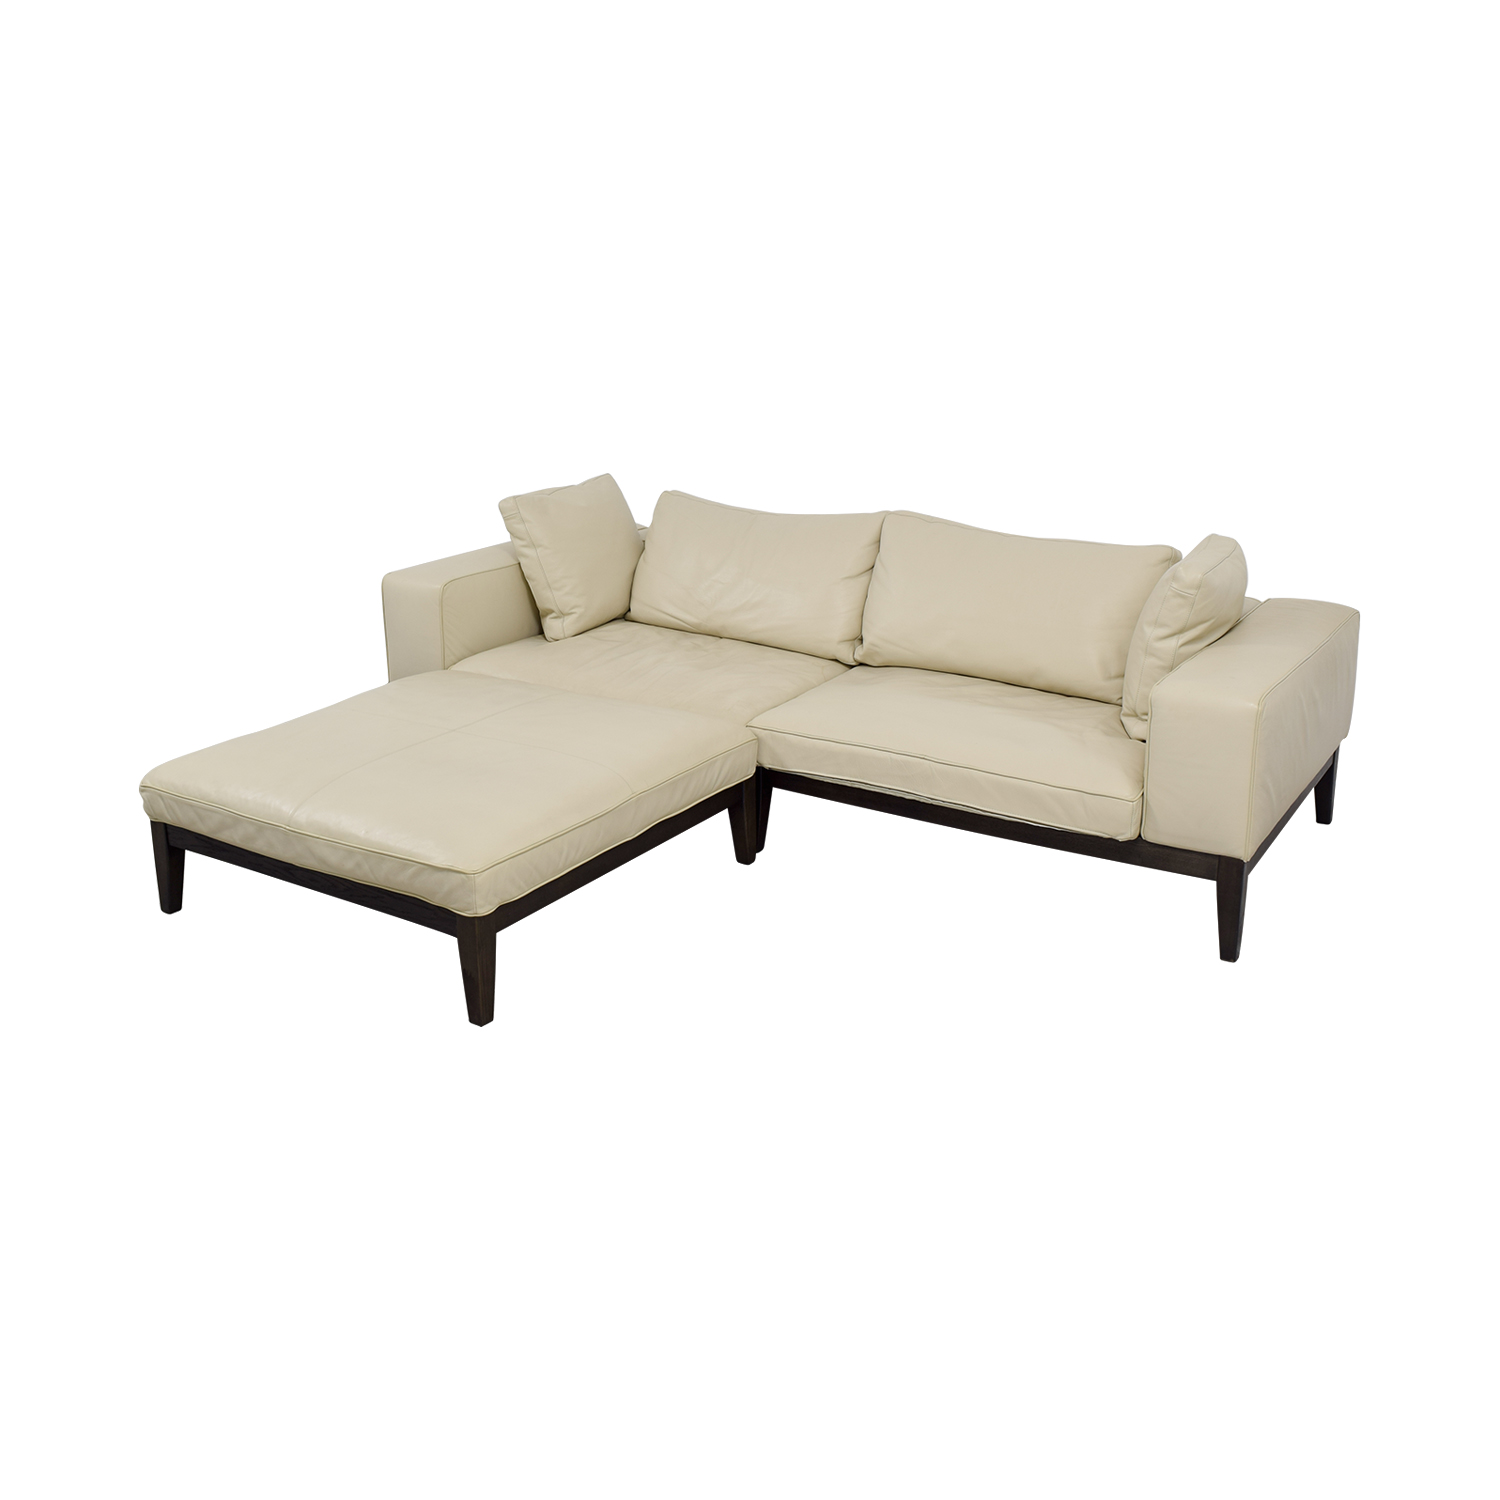 Surprising 90 Off Tree Tree Contemporary Italian Off White Leather Couch With Large Chaise Ottoman Sofas Gmtry Best Dining Table And Chair Ideas Images Gmtryco